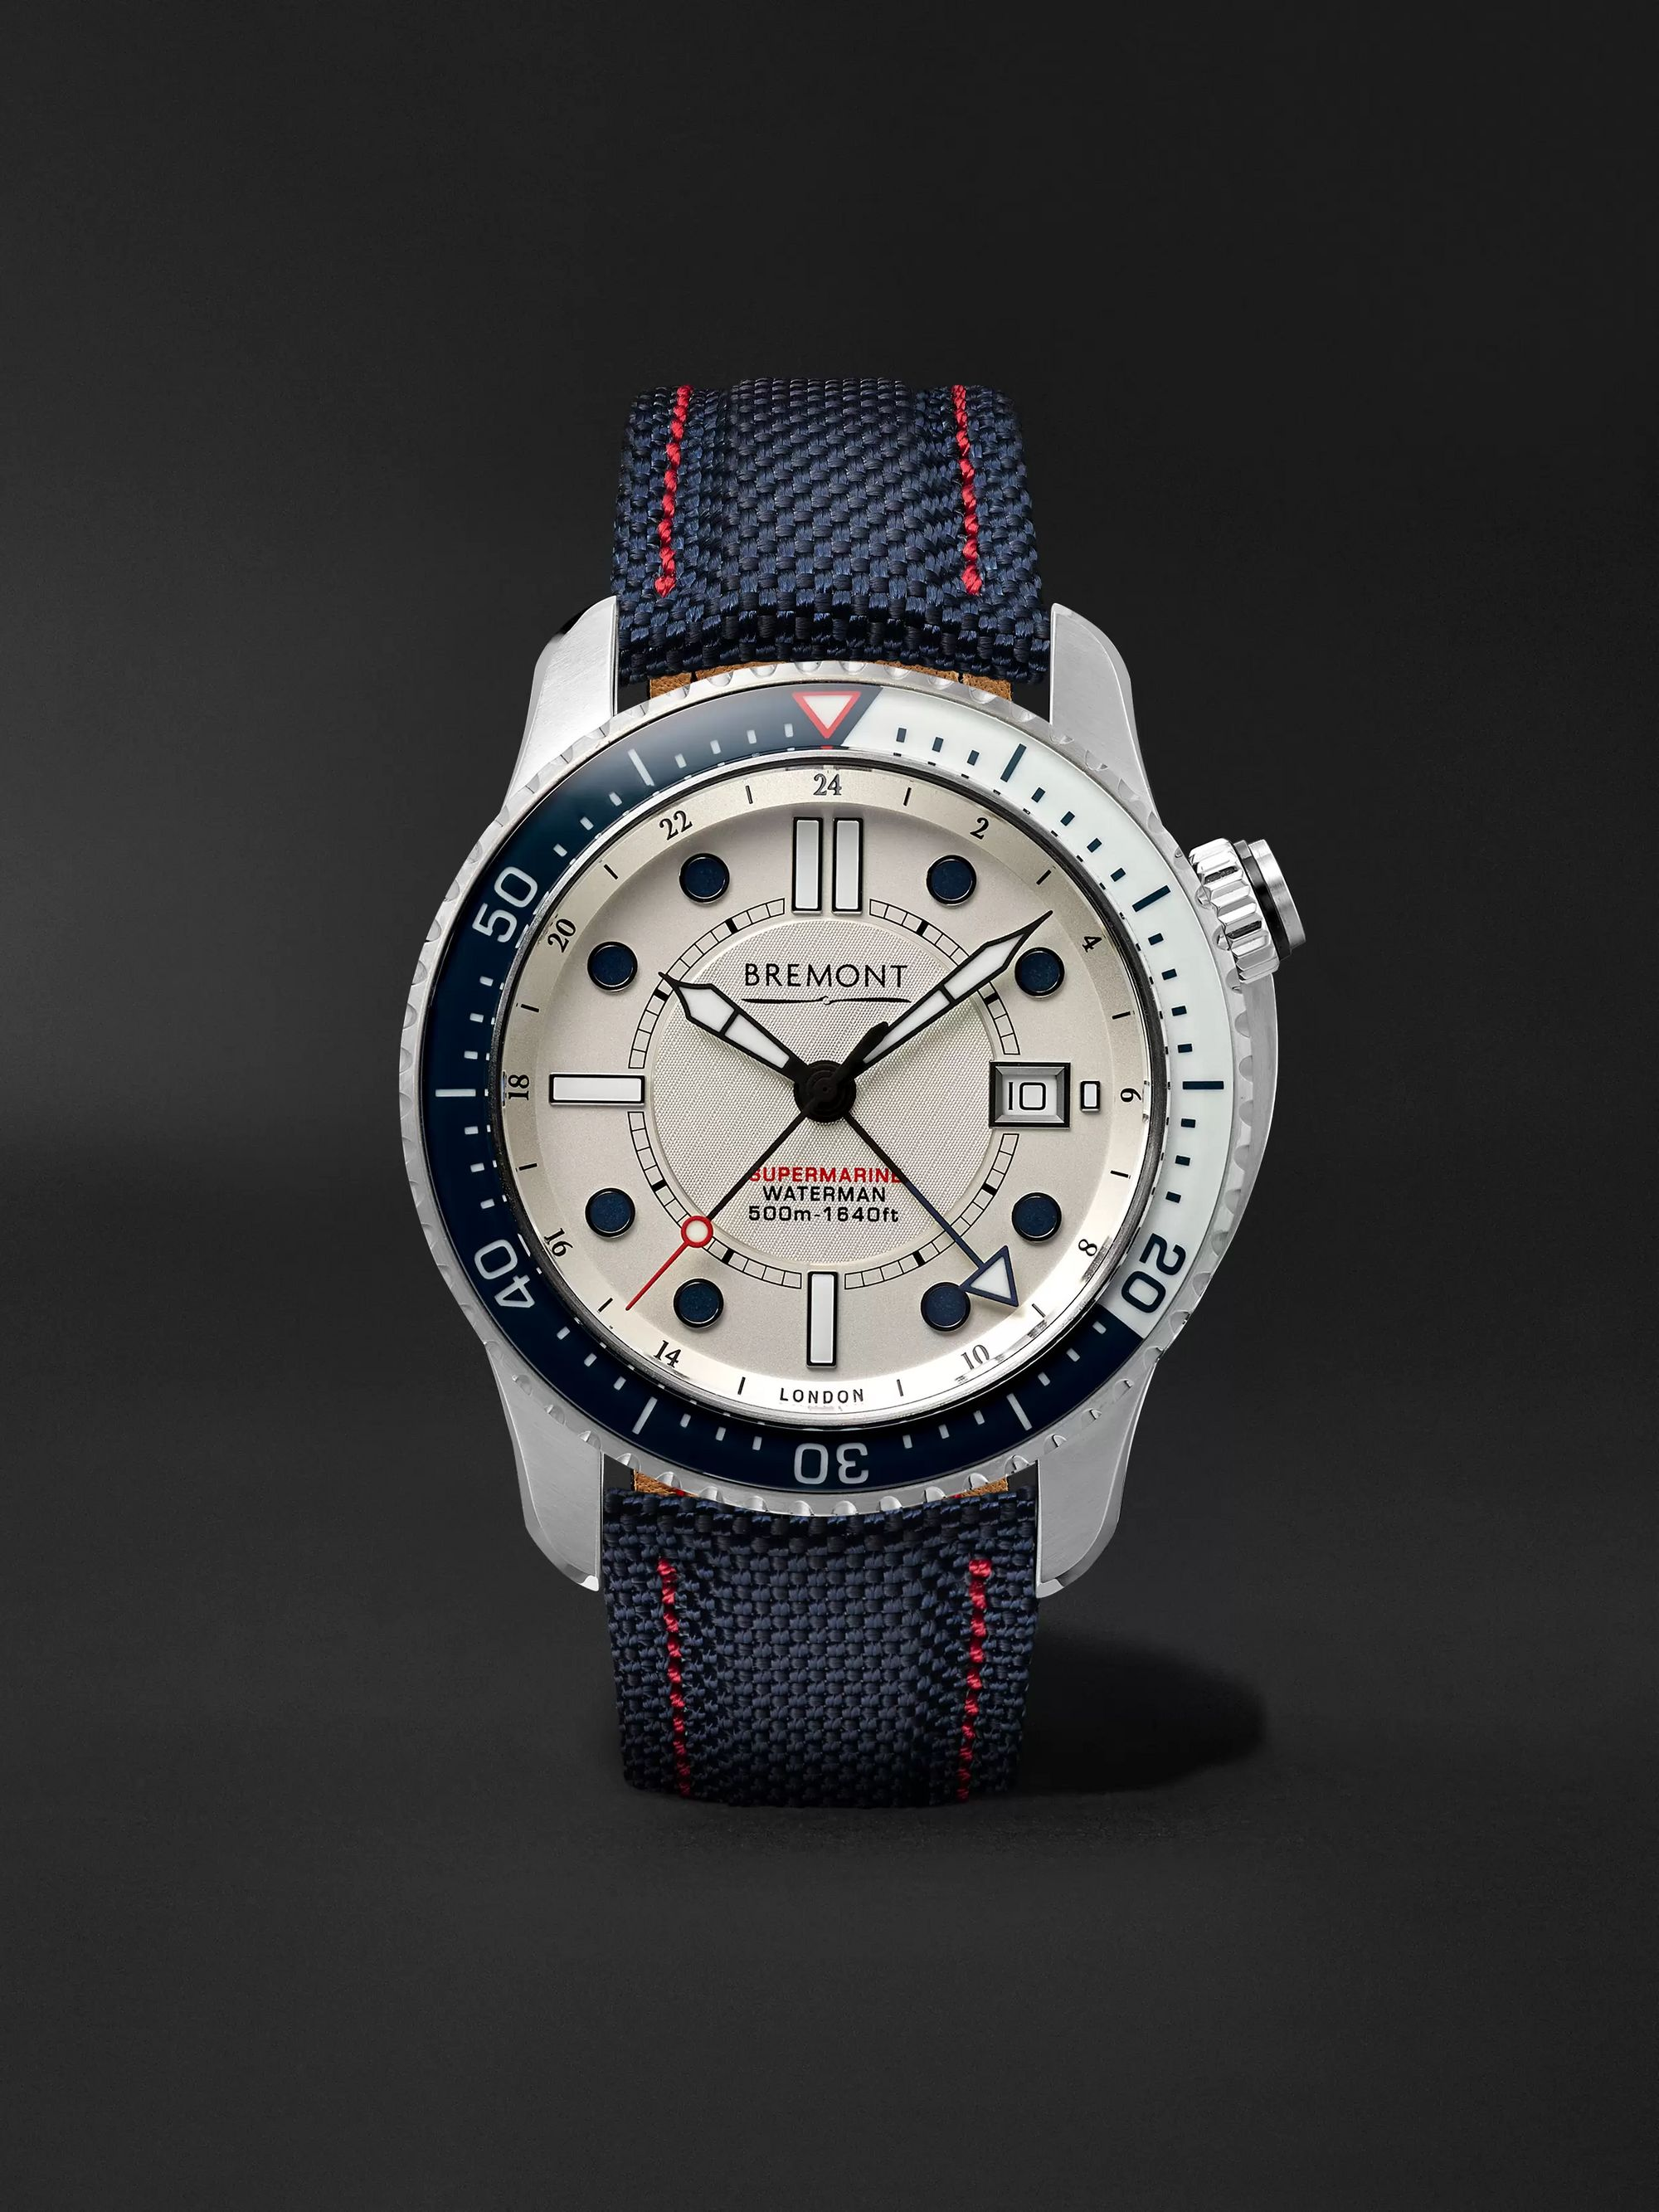 Bremont Supermarine Waterman Limited Edition Automatic 43mm Stainless Steel and Kevlar Watch, Ref. No. S500